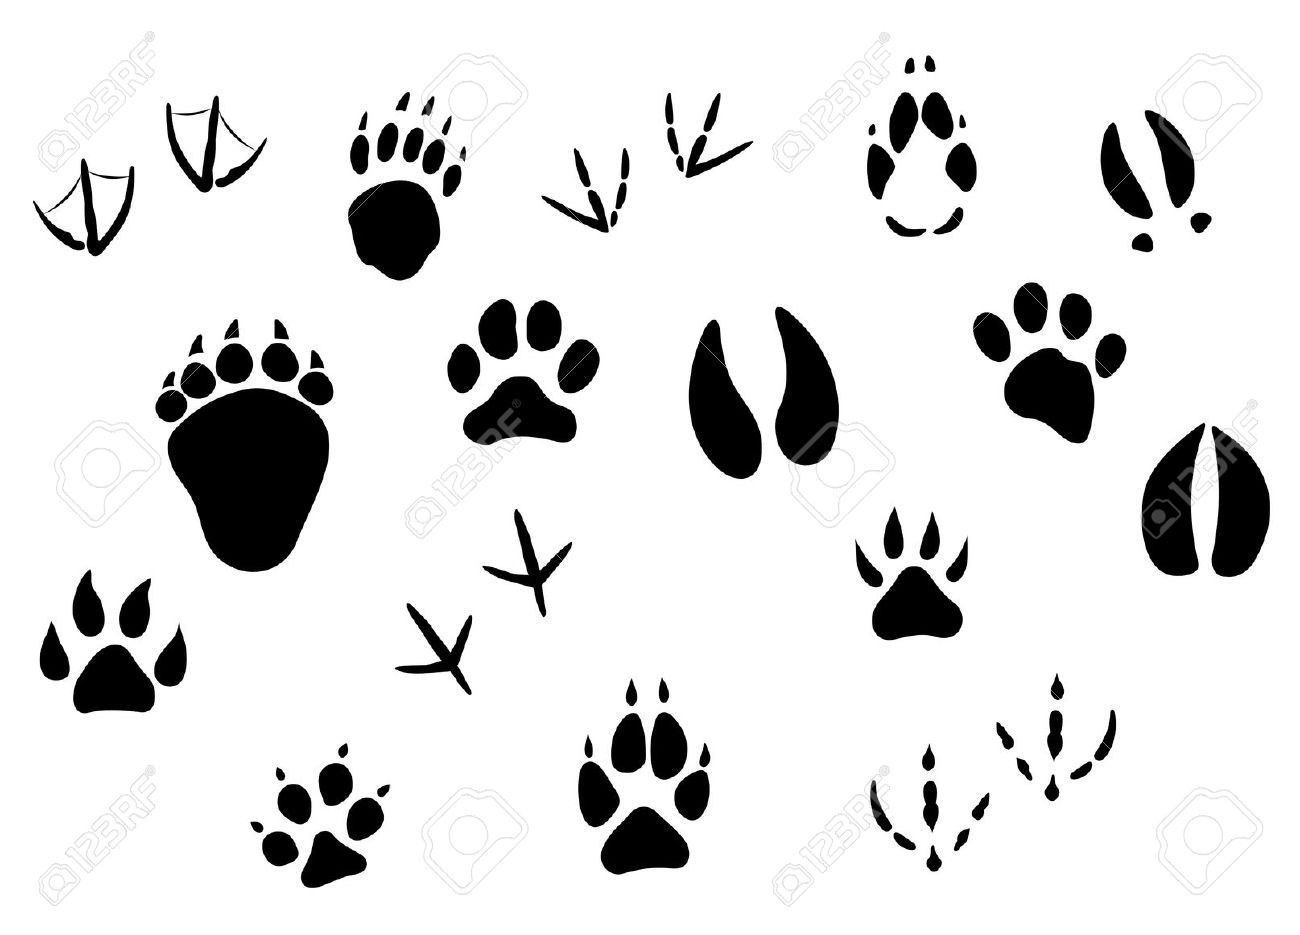 Wildlife tracks clipart clipart freeuse wildlife clipart - Google Search | Cakes for Clients ... clipart freeuse